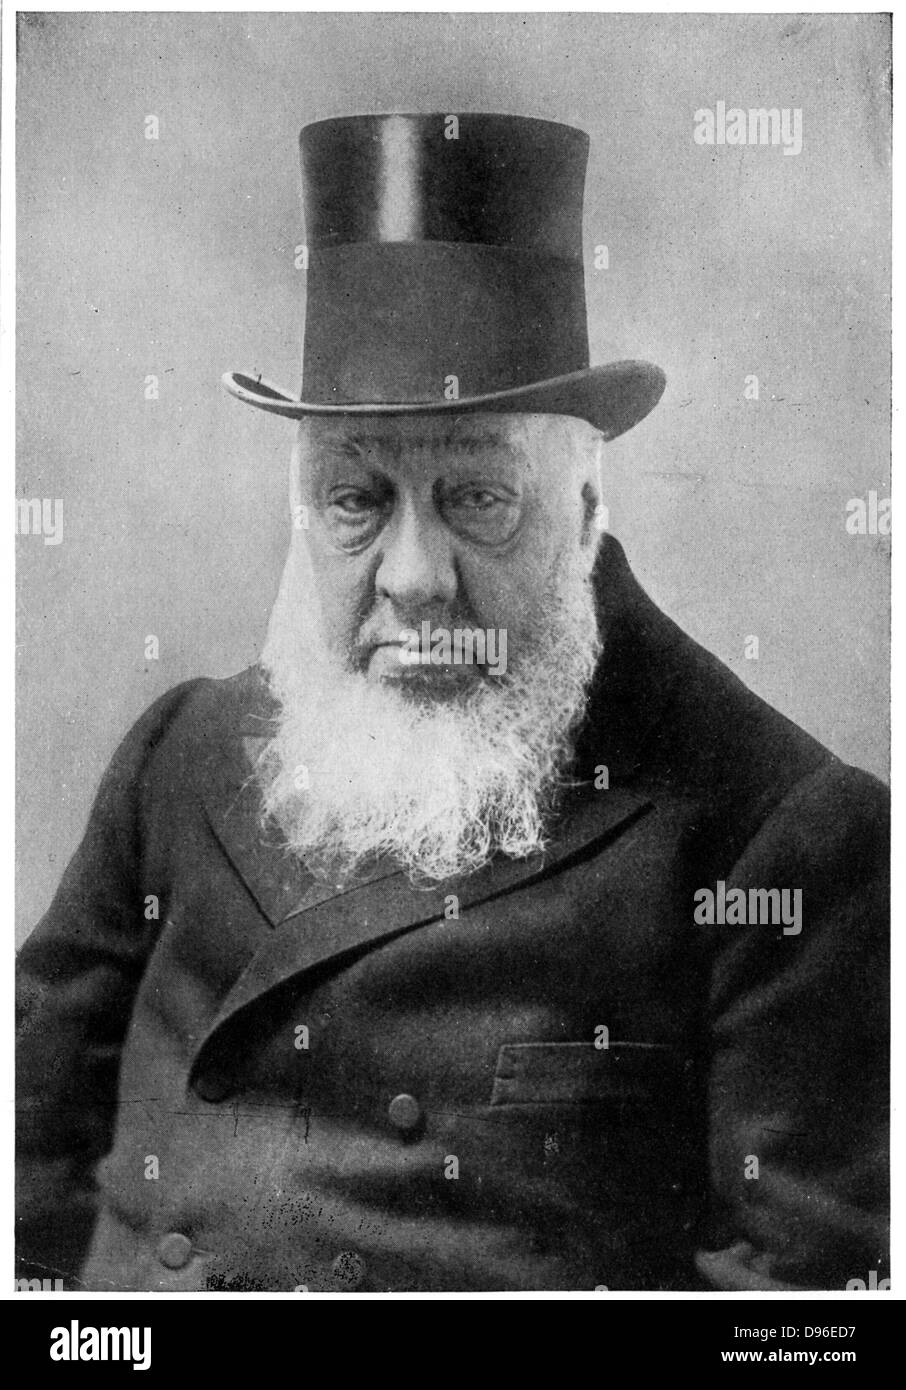 (Stephanus Johannes) Paulus Kruger (1825-1904) known as Oom Paul. South African politician. - Stock Image